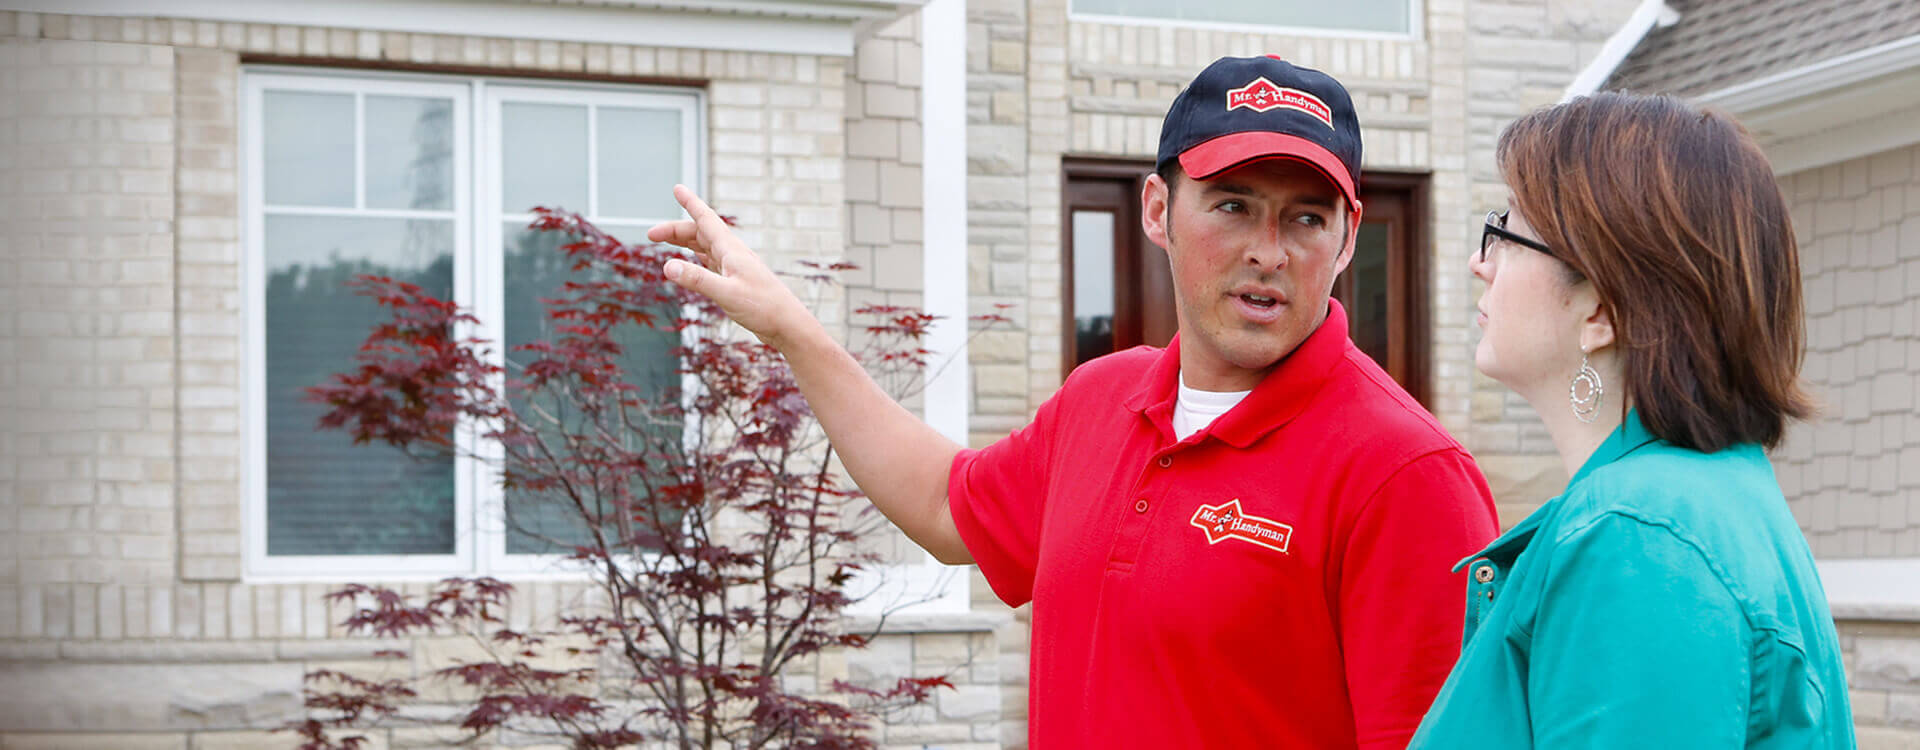 Handyman Services In Springfield Township Mr Of